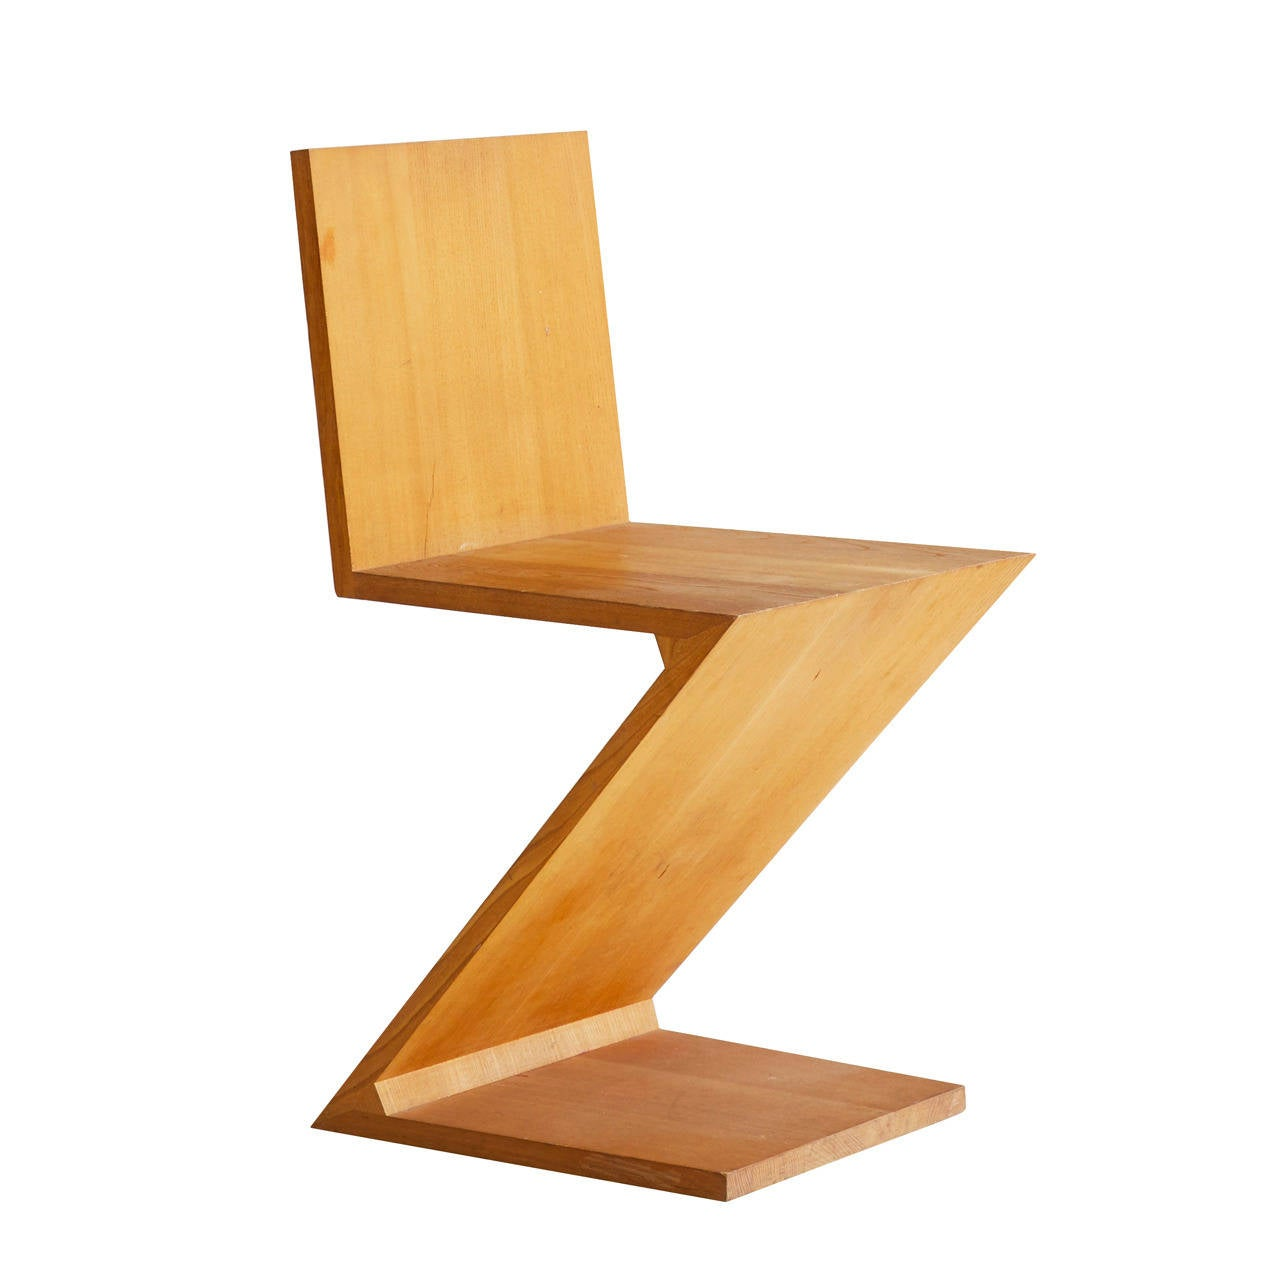 Gerrit rietveld chair for sale - Gerrit Rietveld Zig Zag Chair 1